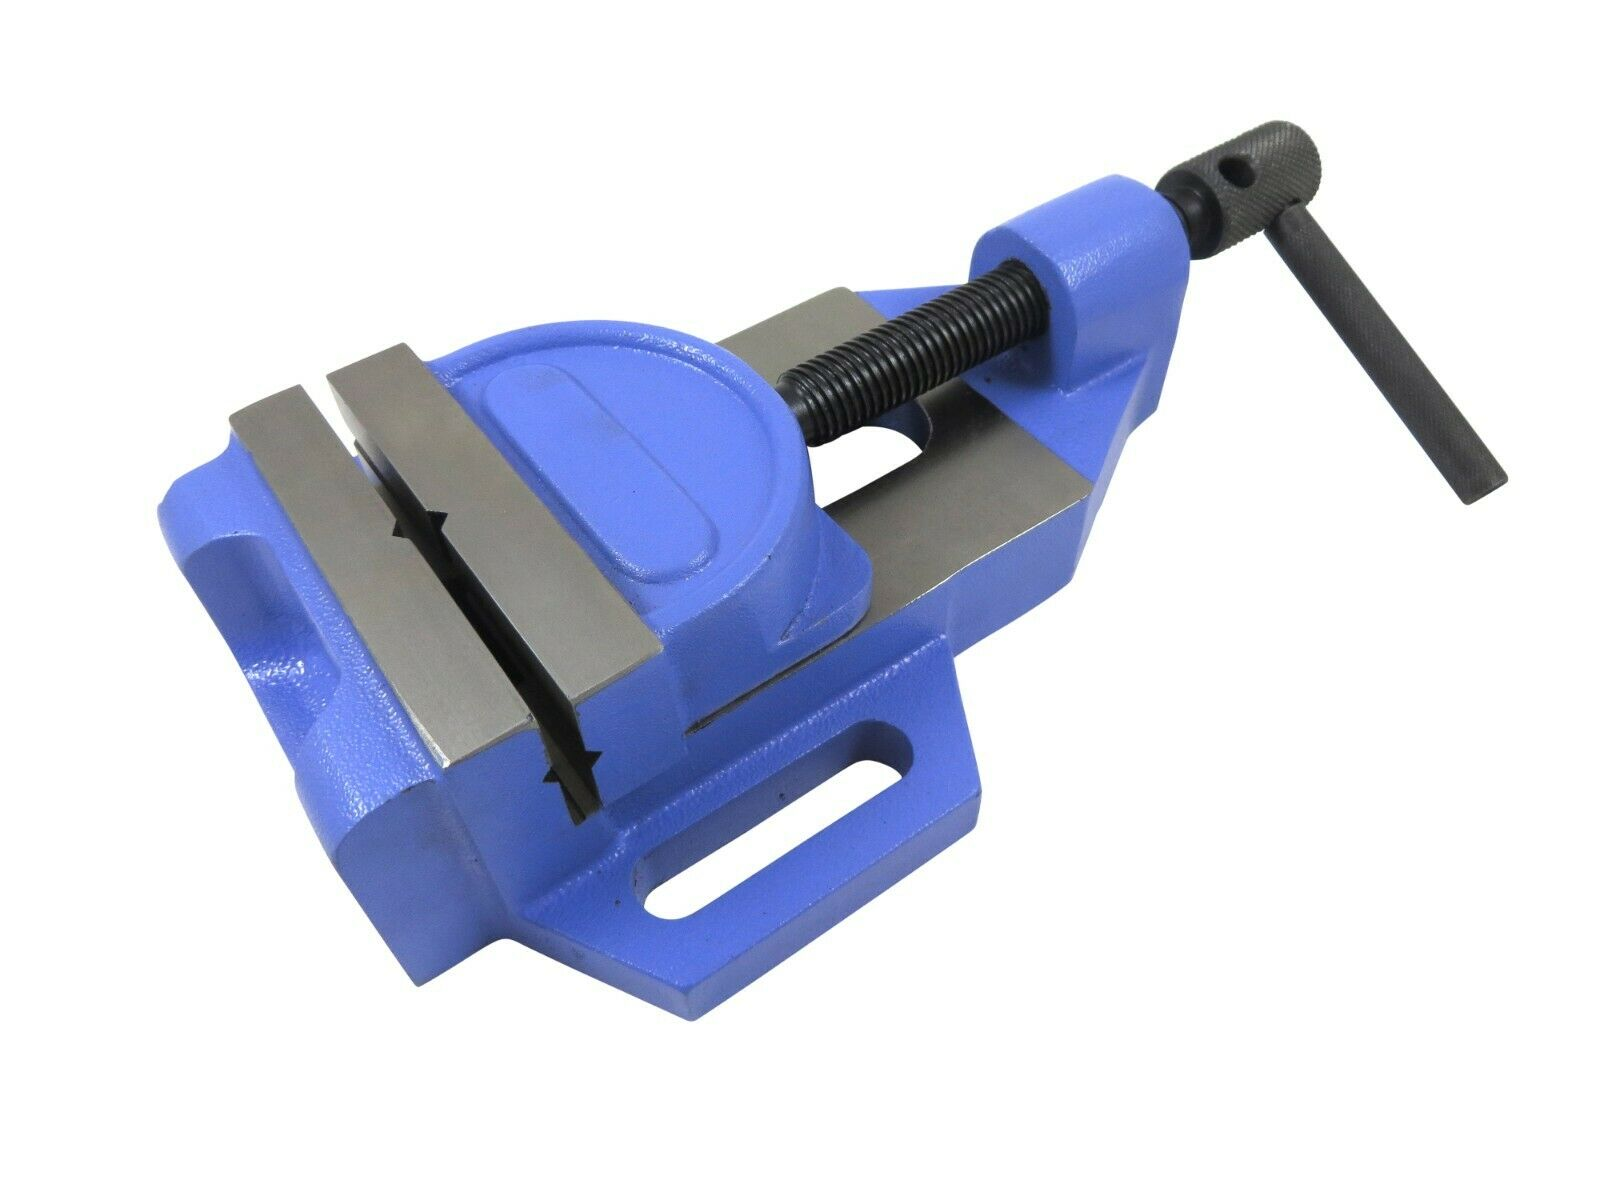 Jaw Drill Press Vise, 4  Wide Jaws, Max Opening 3-1 8 , Jaws Tilts 40 degrees